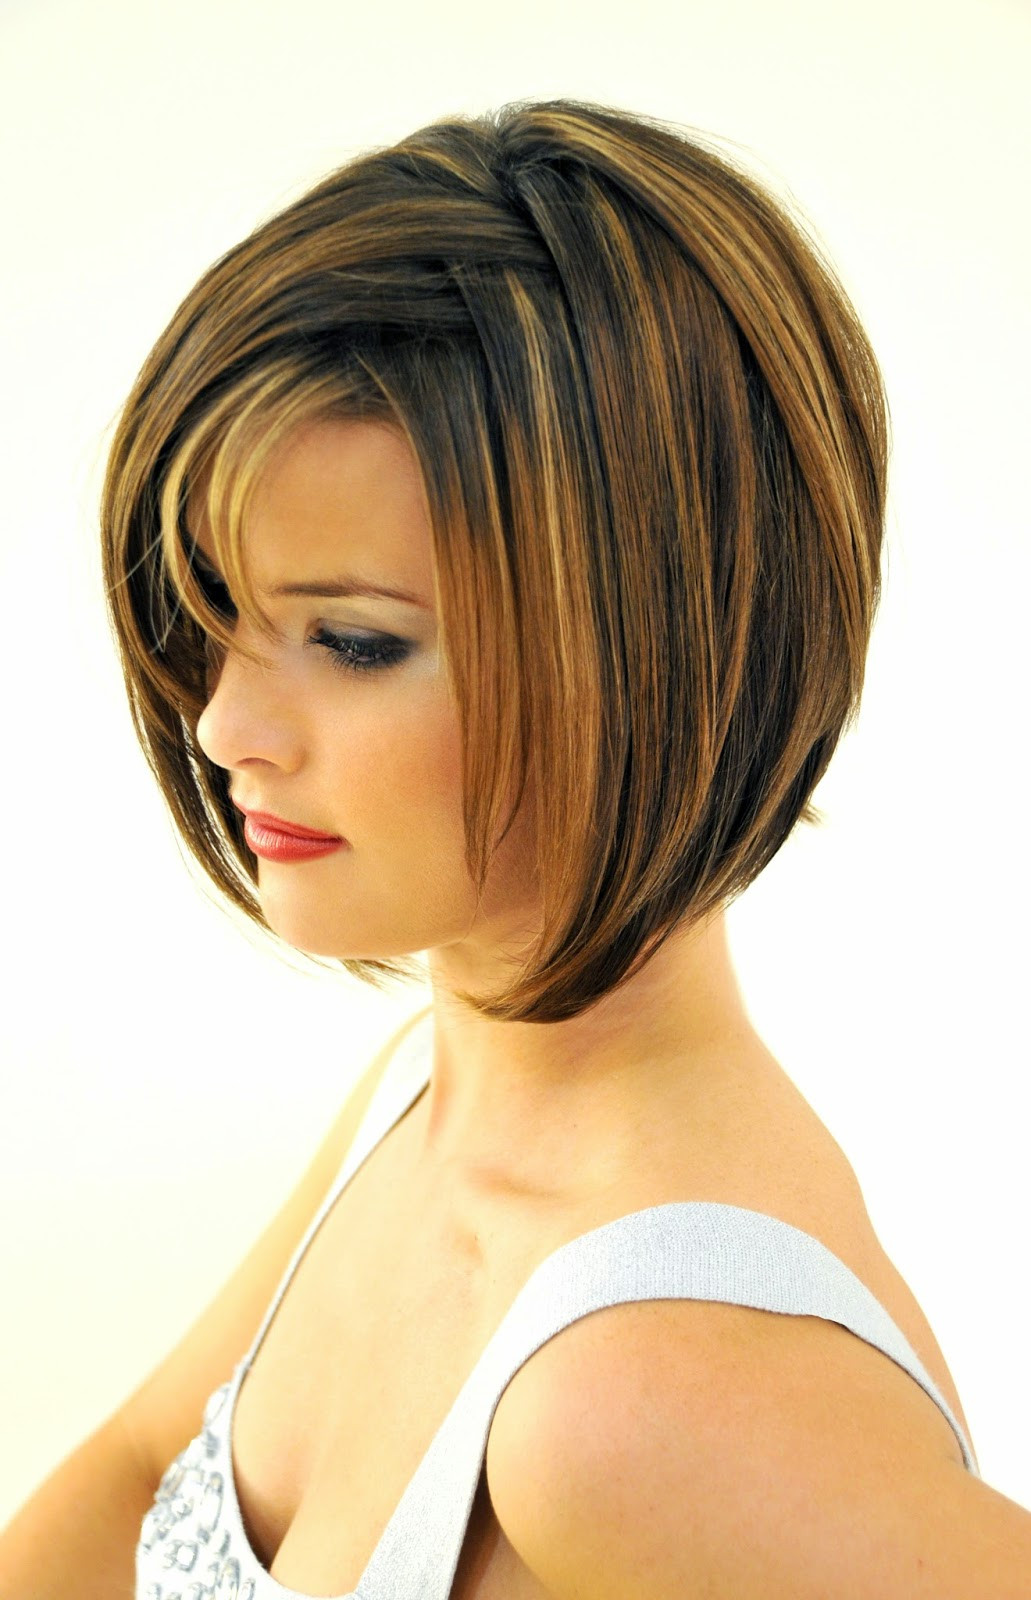 Bob Hairstyles Images  Layered Bob Hairstyles for Chic and Beautiful Looks The